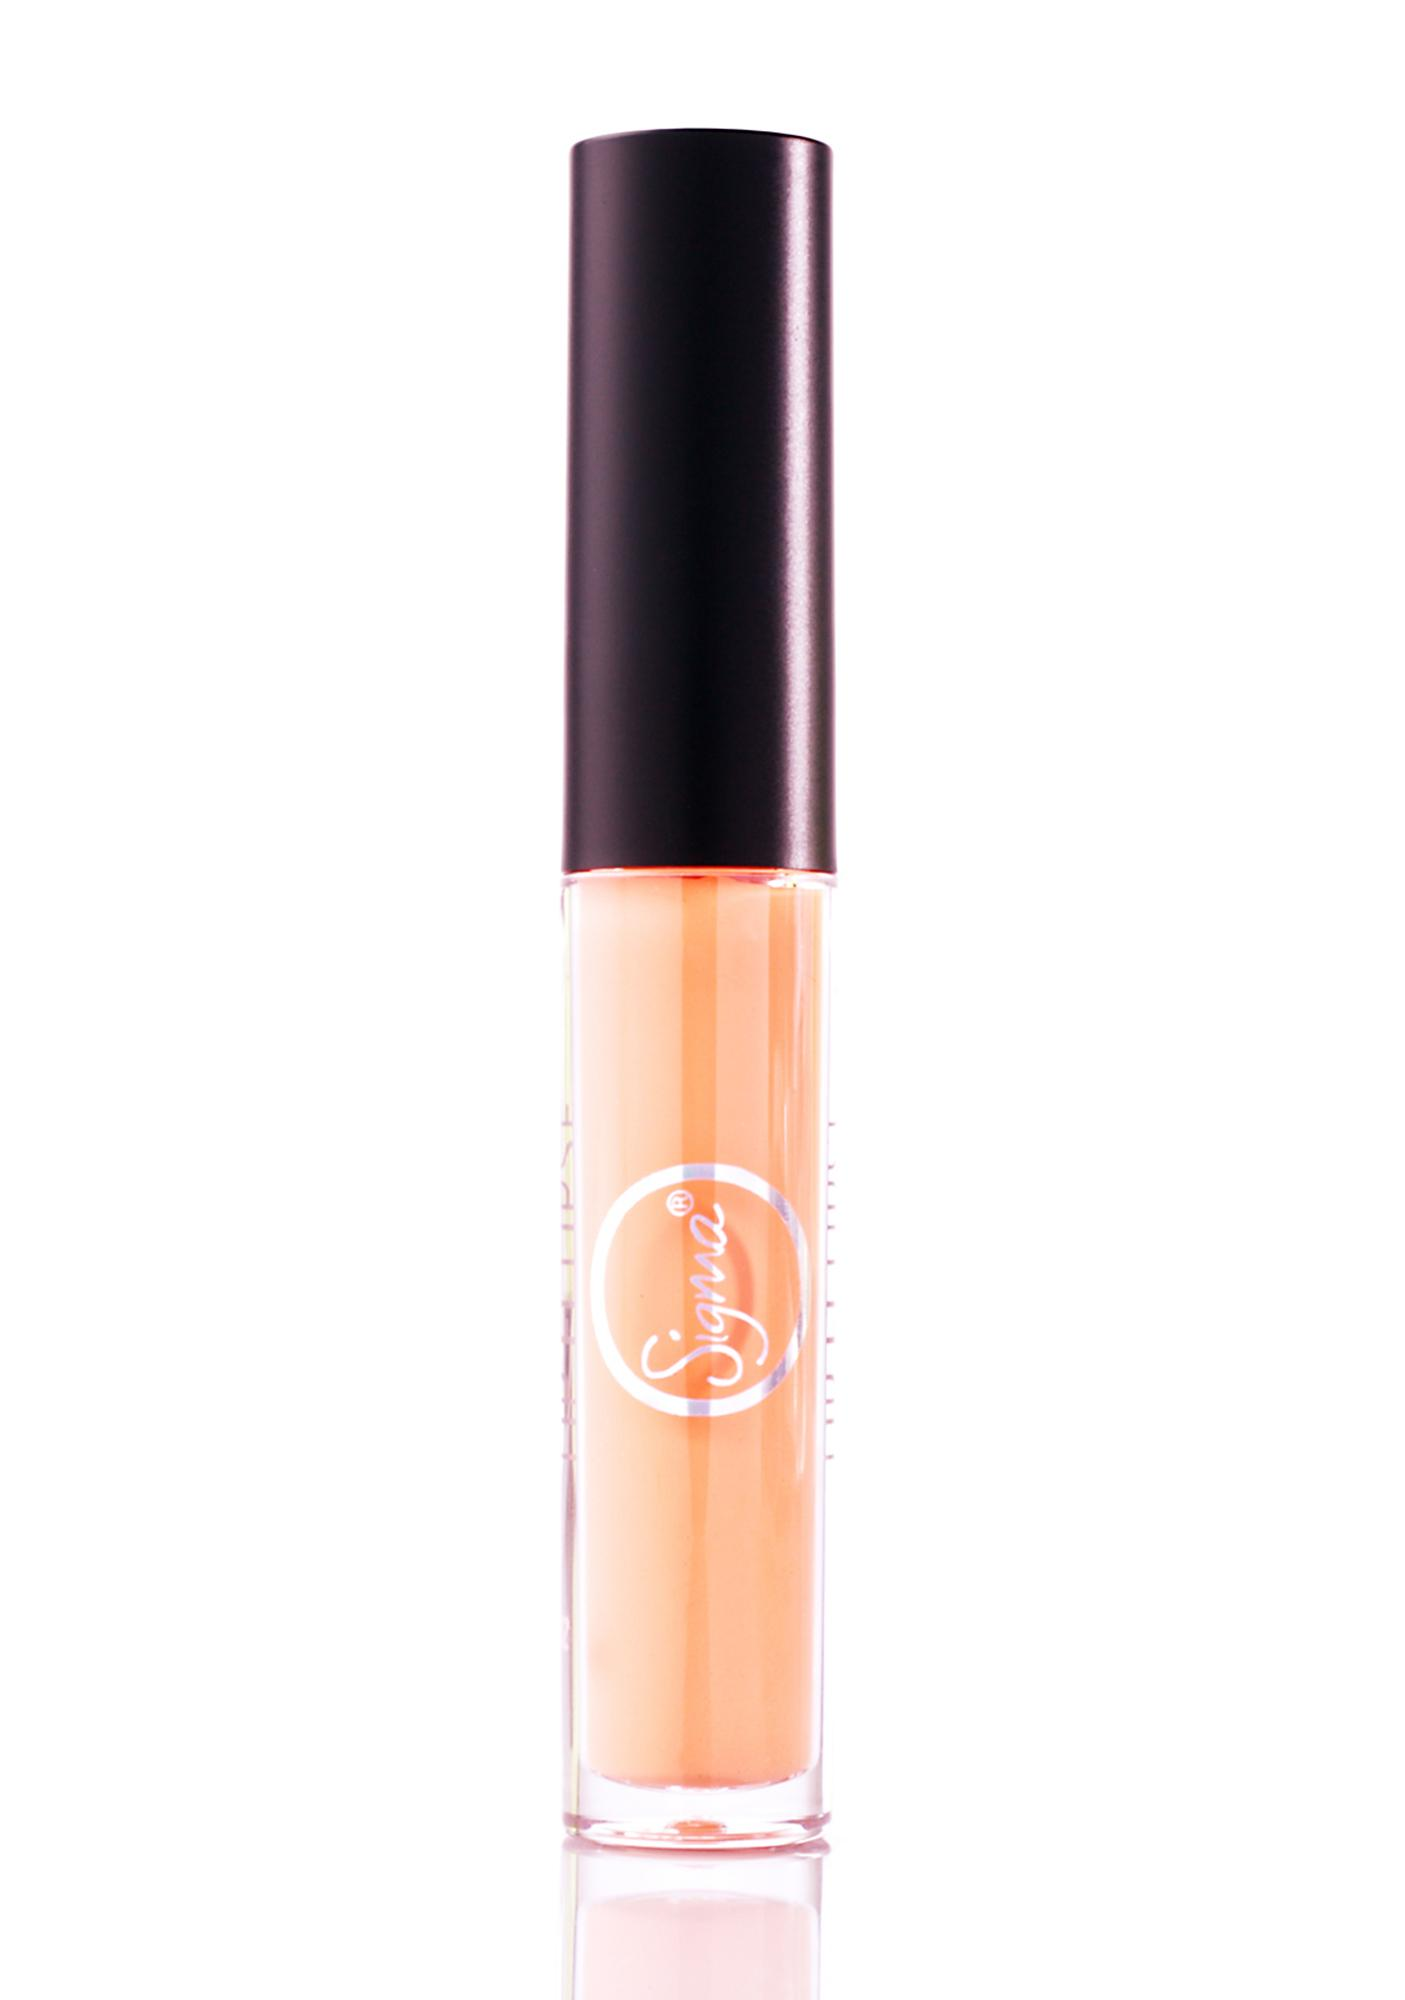 Sigma London Girl Lip Eclipse Gloss